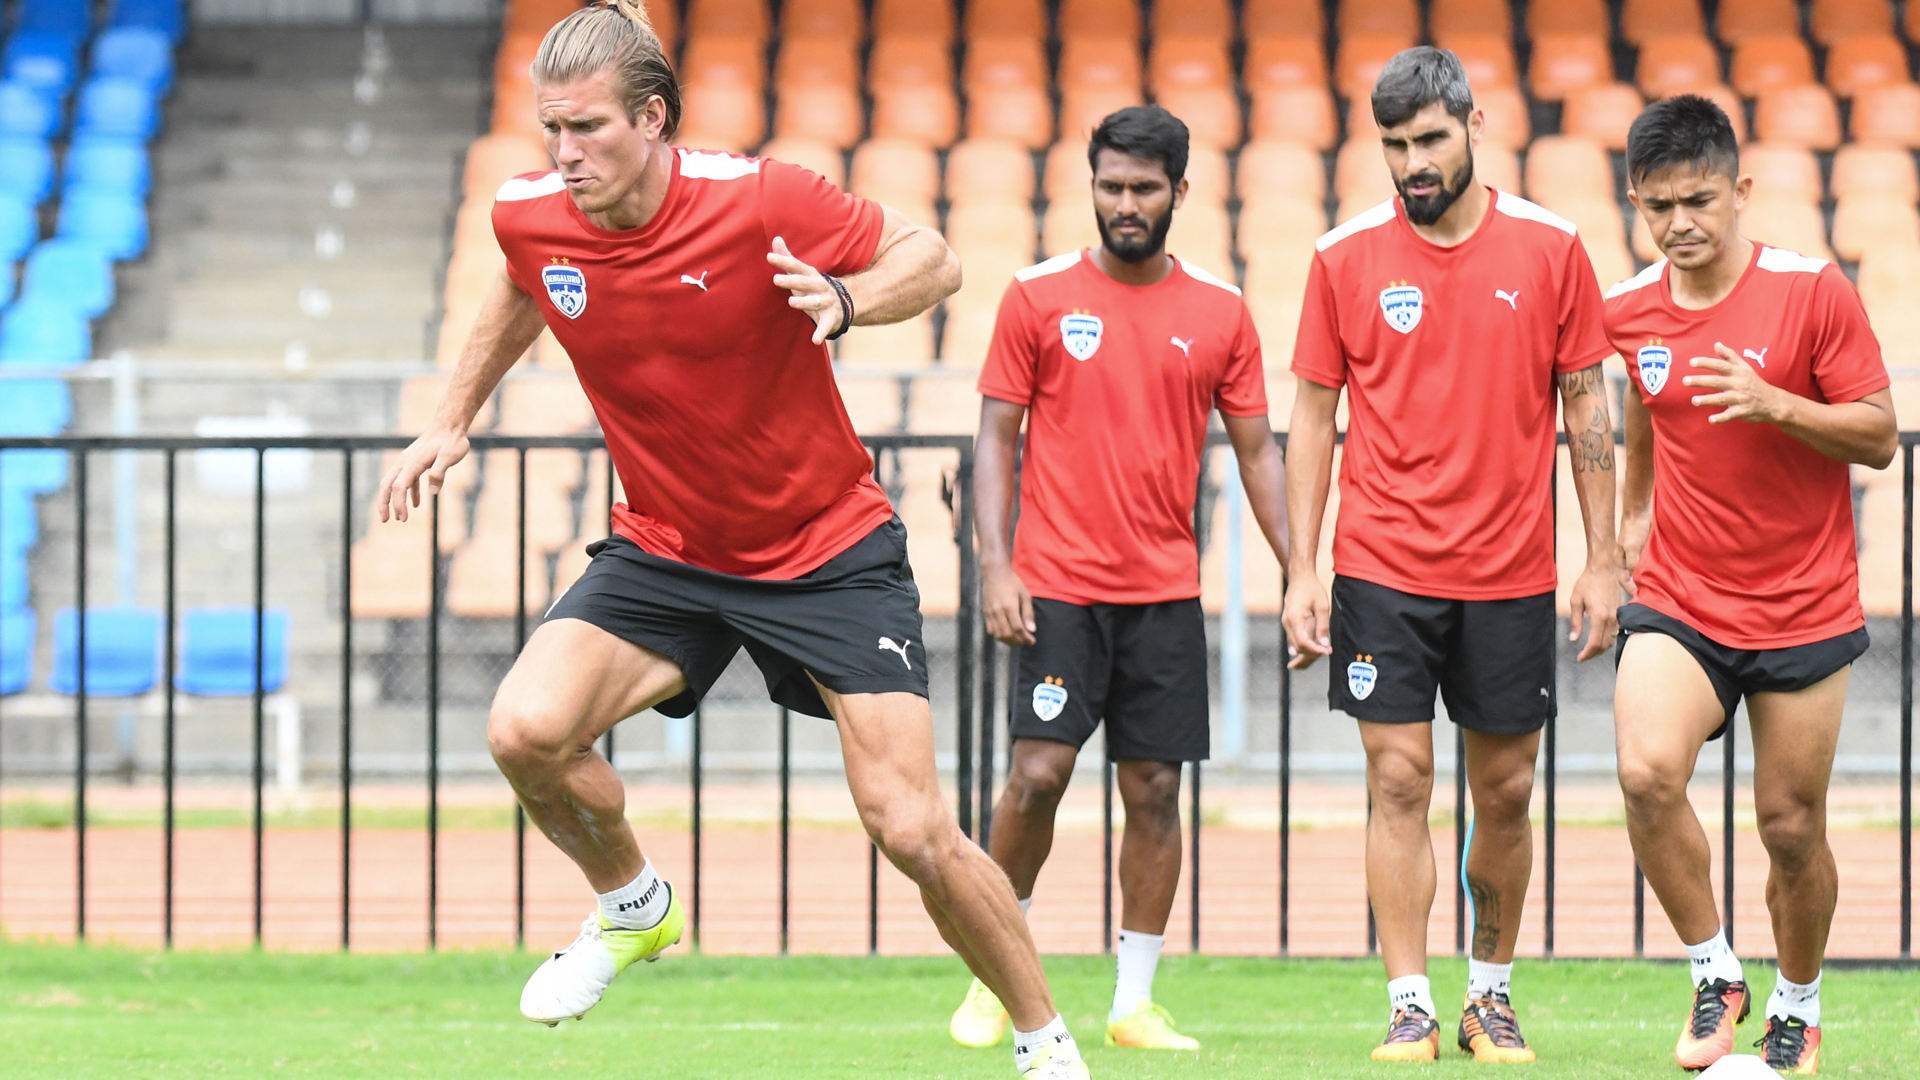 ISL 2017: Bengaluru FC's results in pre-season